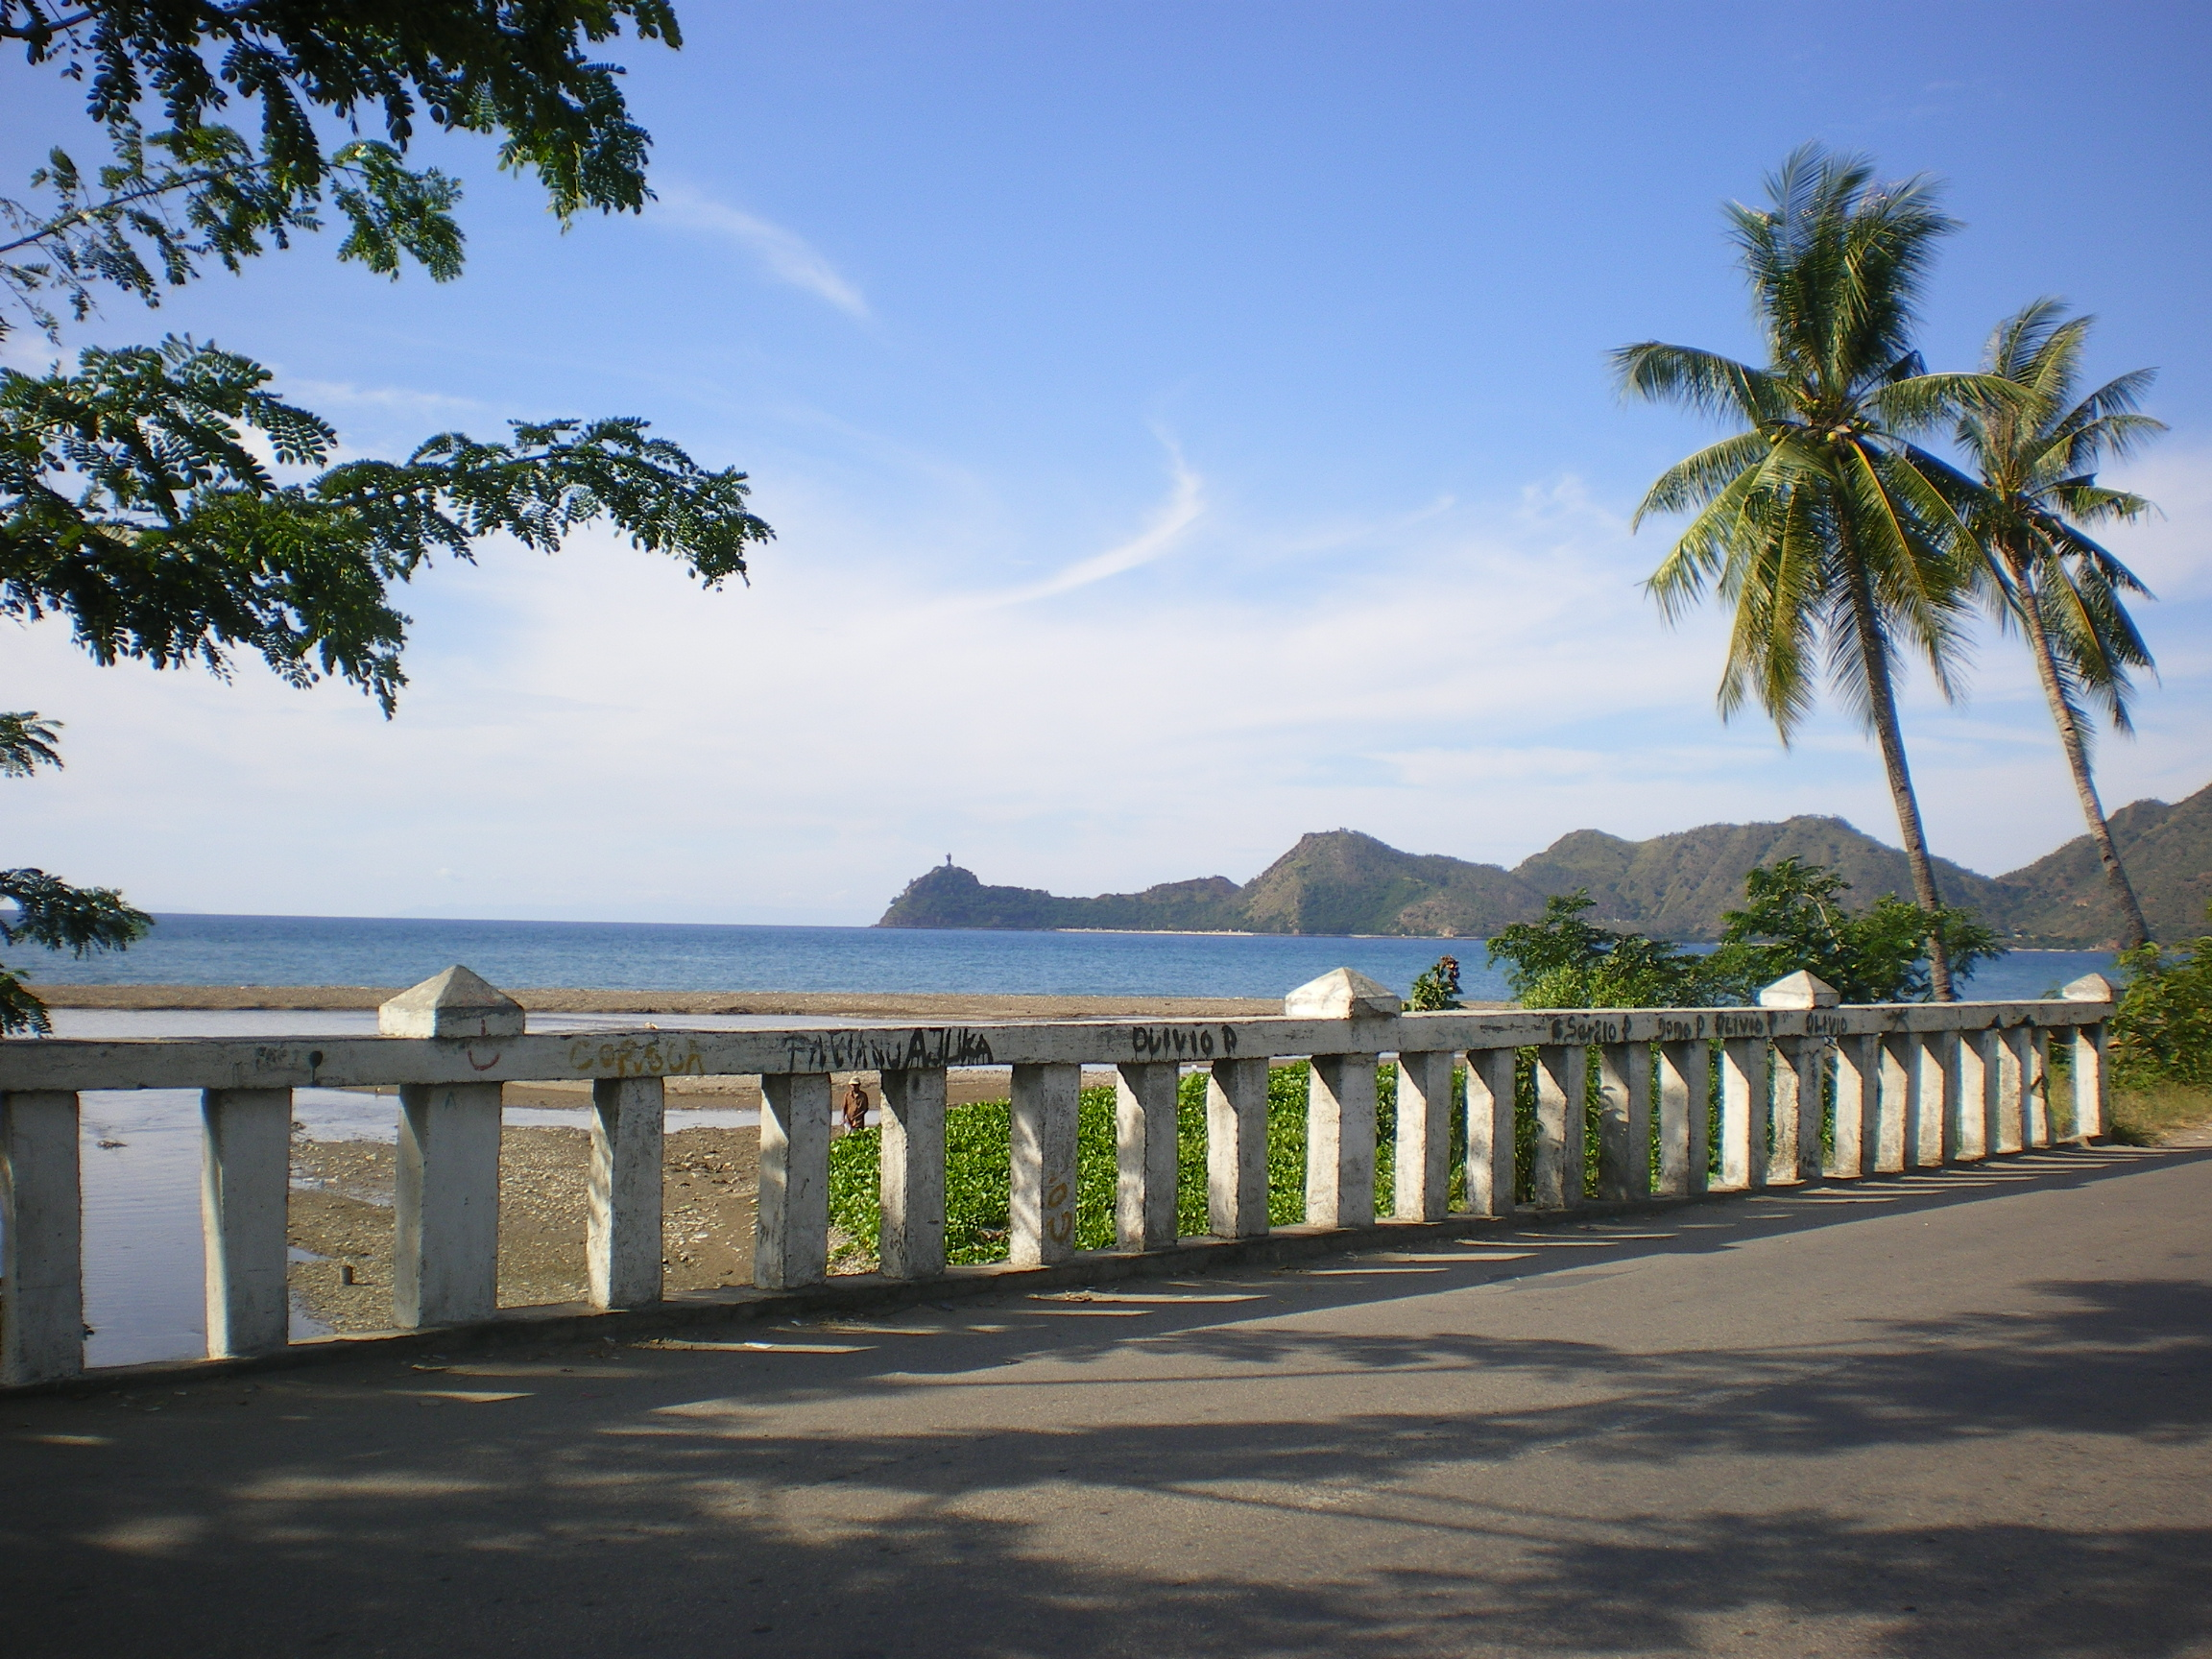 The Dili Waterfront